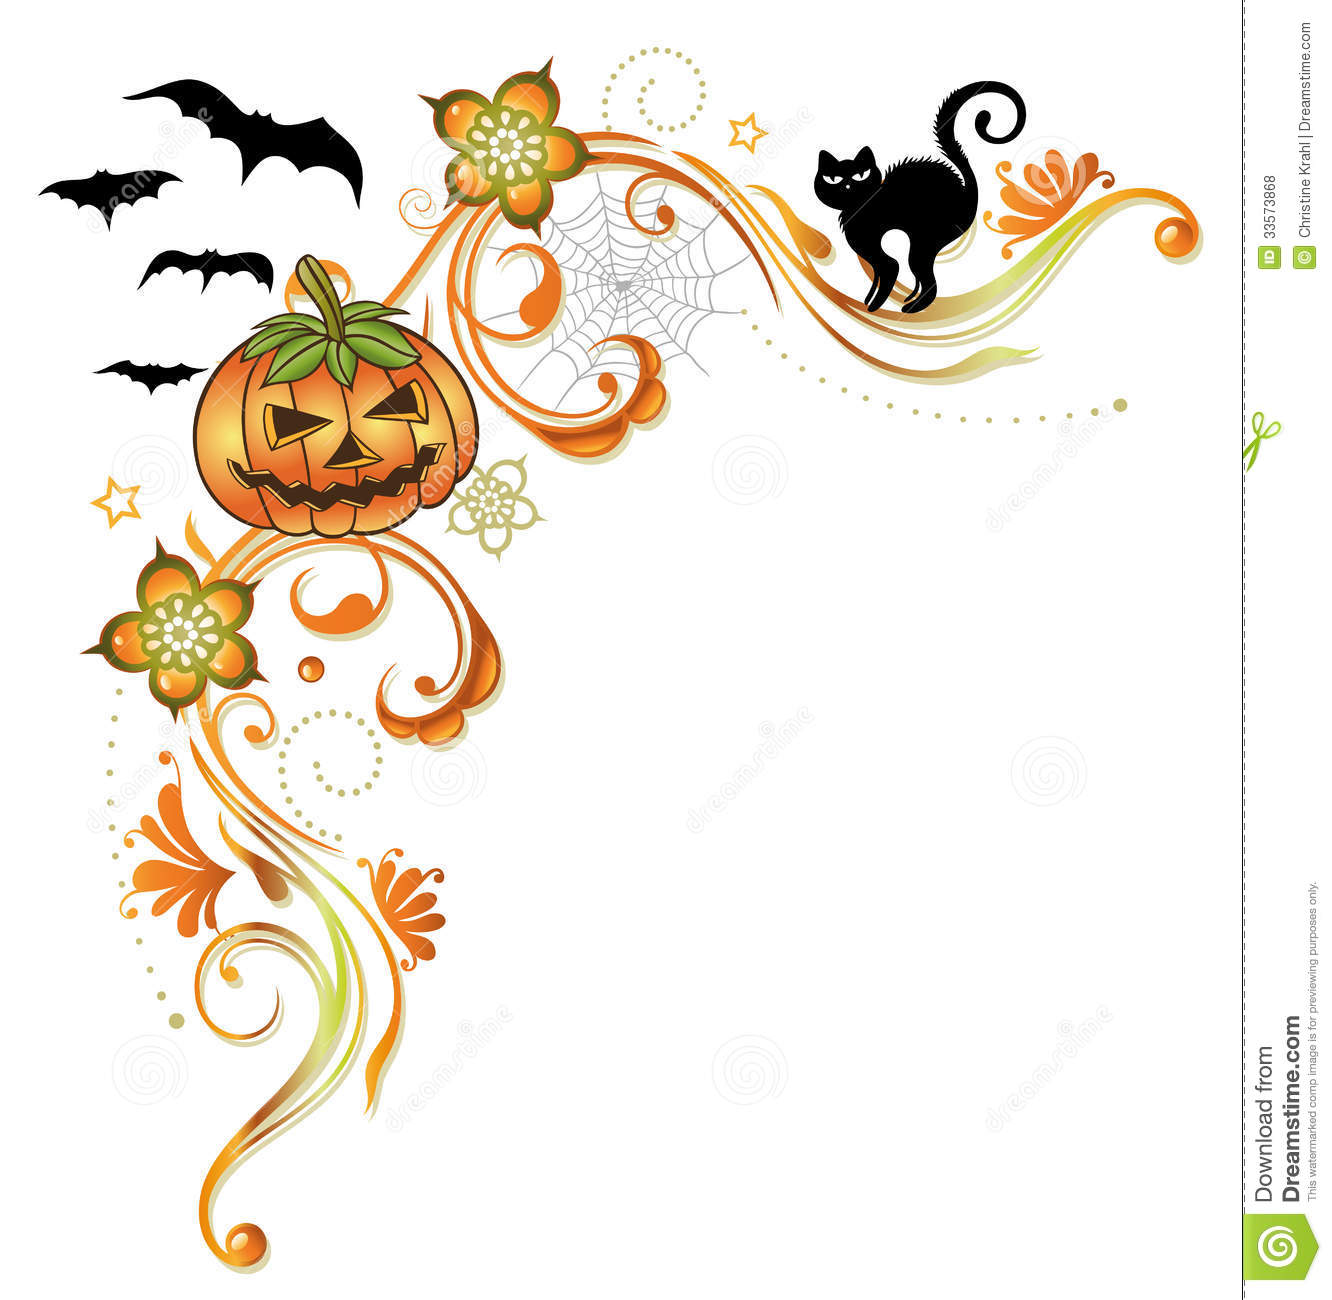 Fb clipart halloween birthday free library Printable Clipart Borders | Free download best Printable ... free library